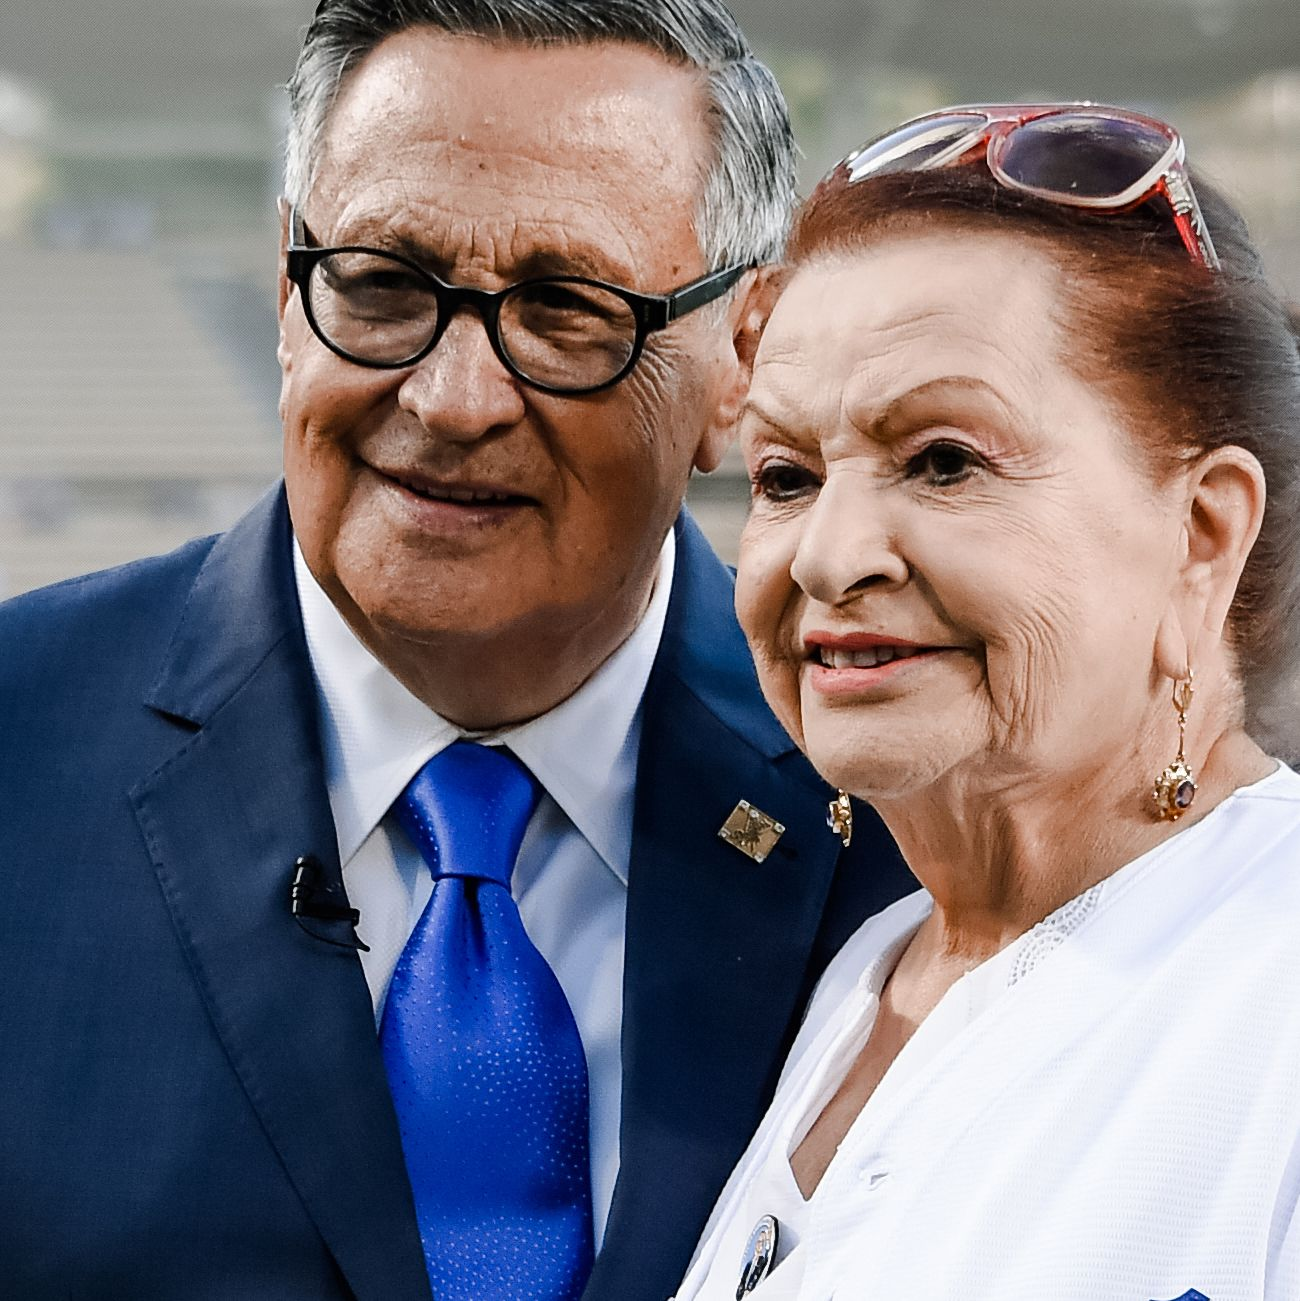 Jaime Jarrin and Vin Scully at Jarrin's Ring of Honor ceremony